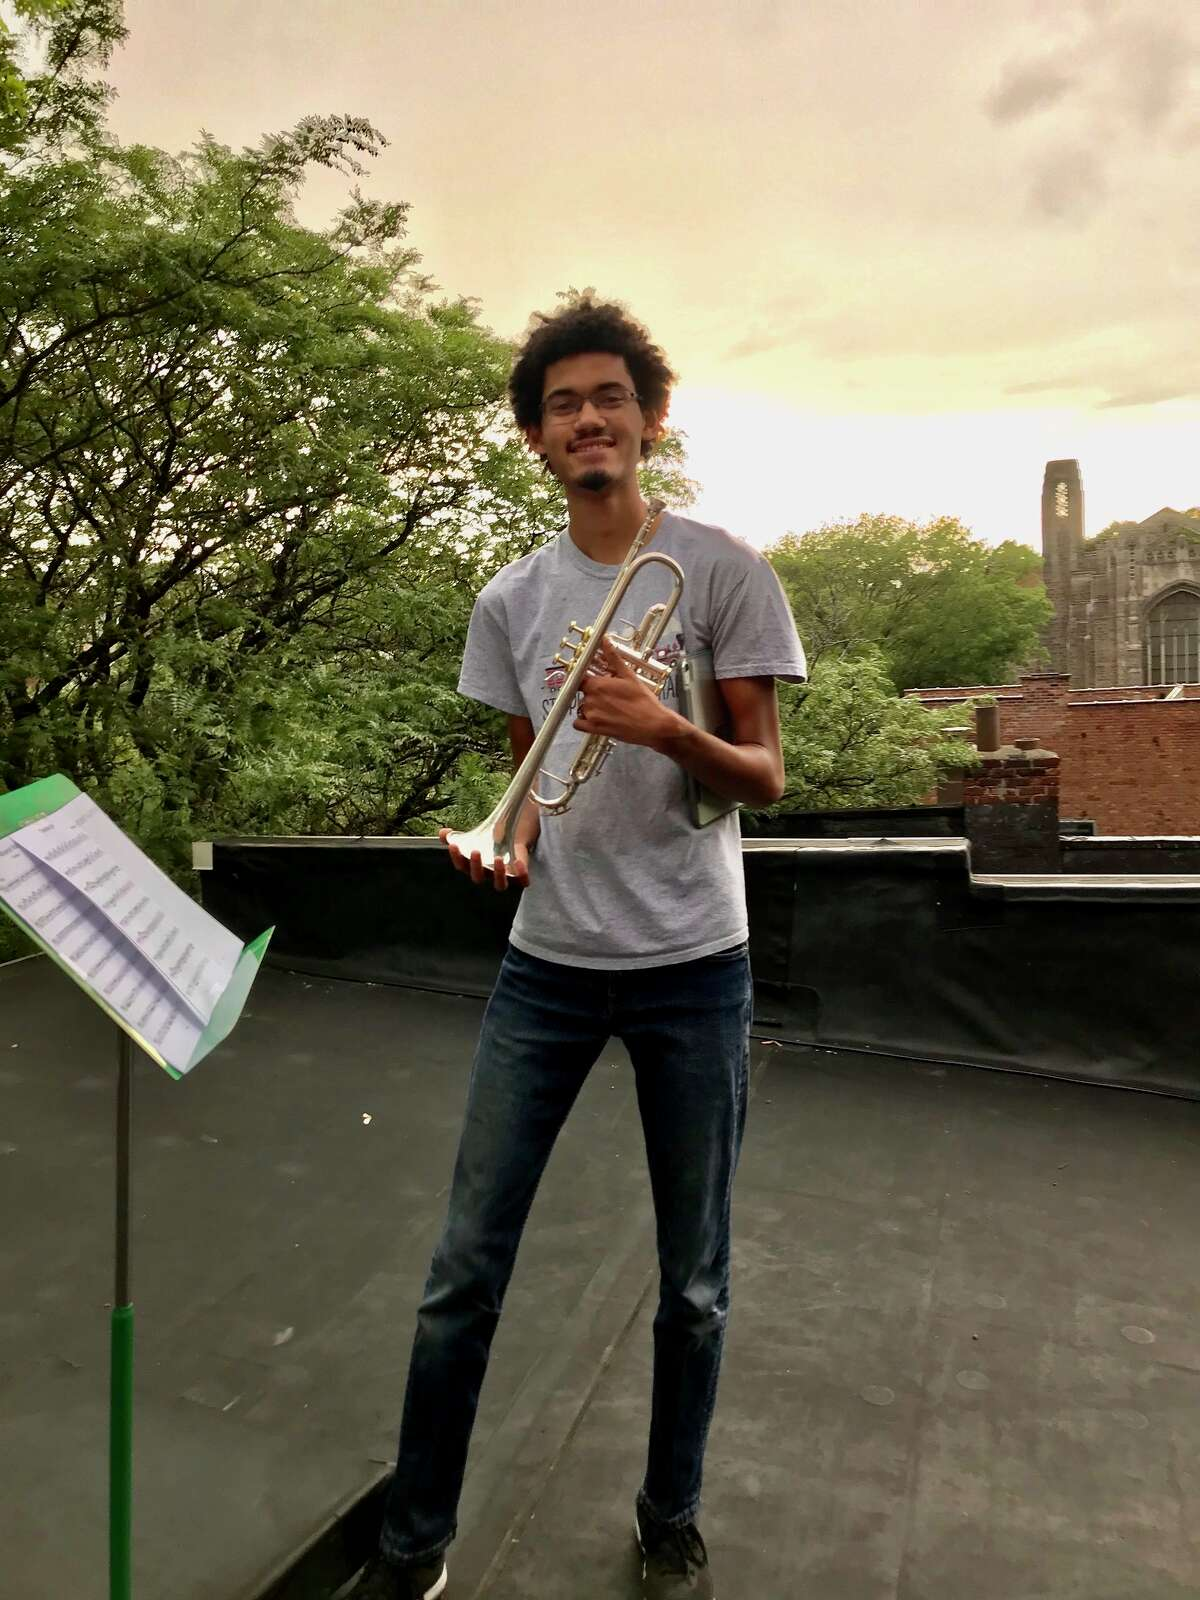 Themba Pieterse, 17, who graduated from Albany HS on Saturday, has been accepted into the trumpet performance program at the prestigious Schulich School of Music at McGill University in Montreal in the fall and his dream is to become a professional trumpet player in an orchestra.